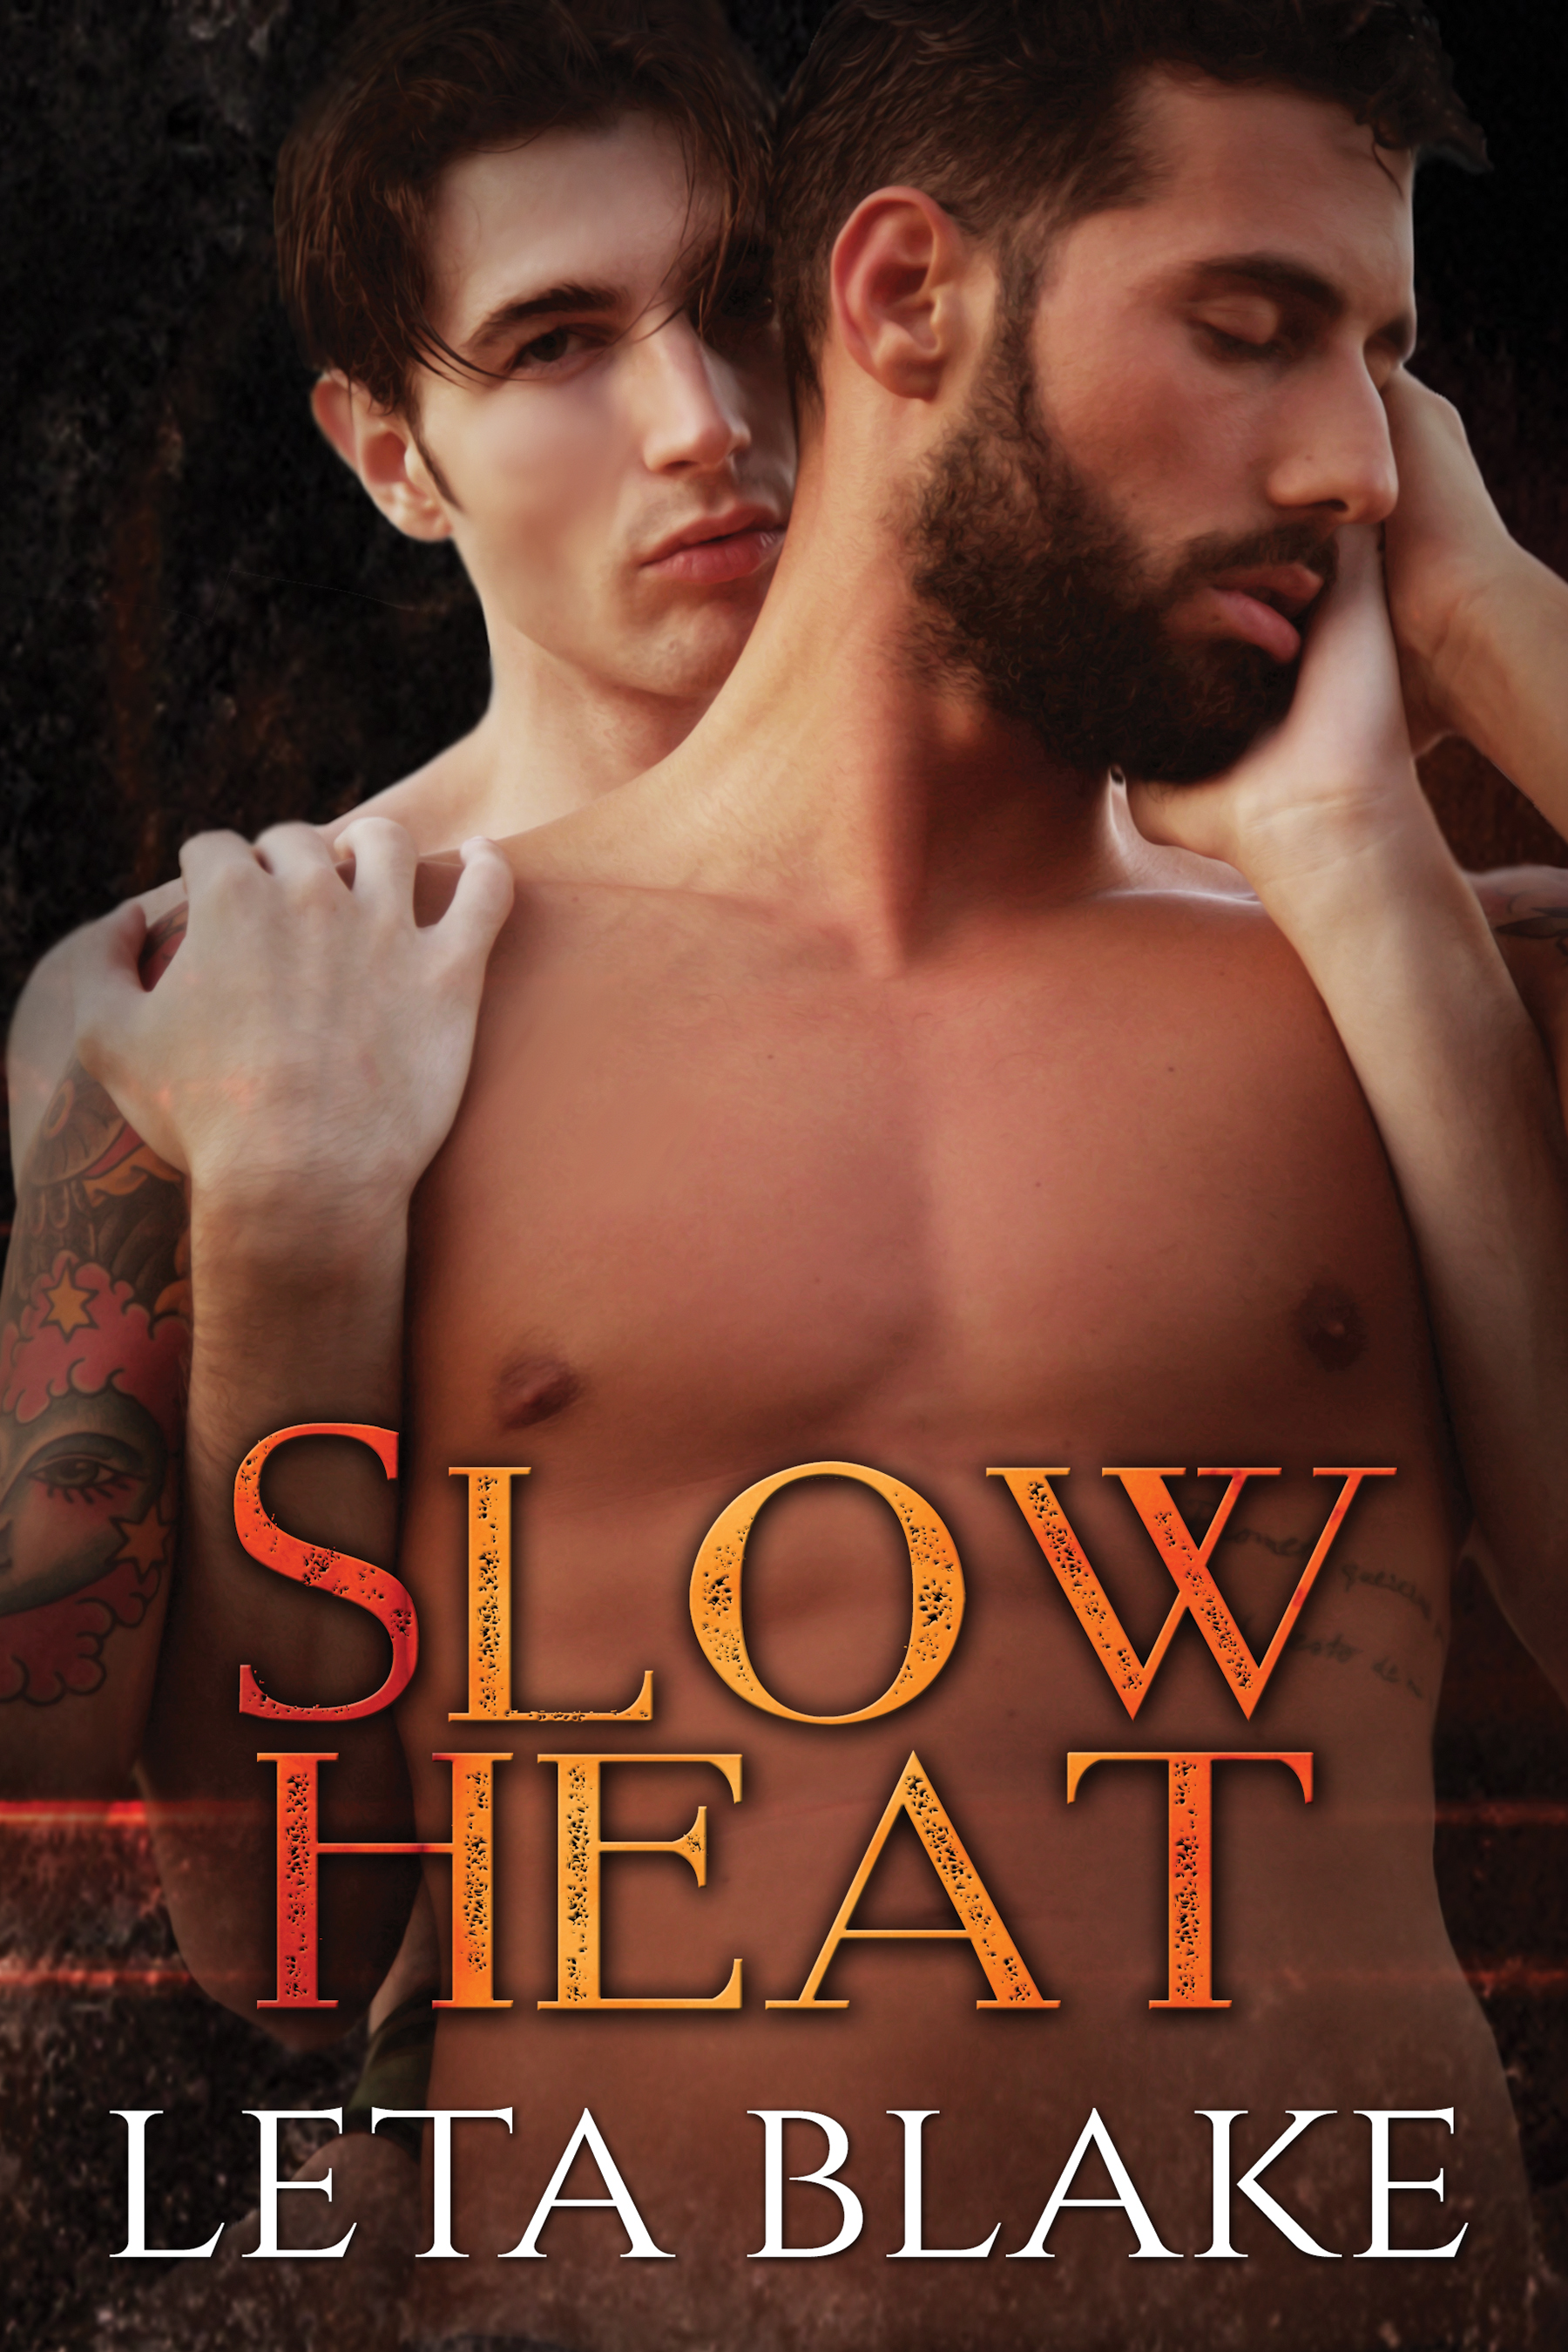 Review: Slow Heat by Leta Blake